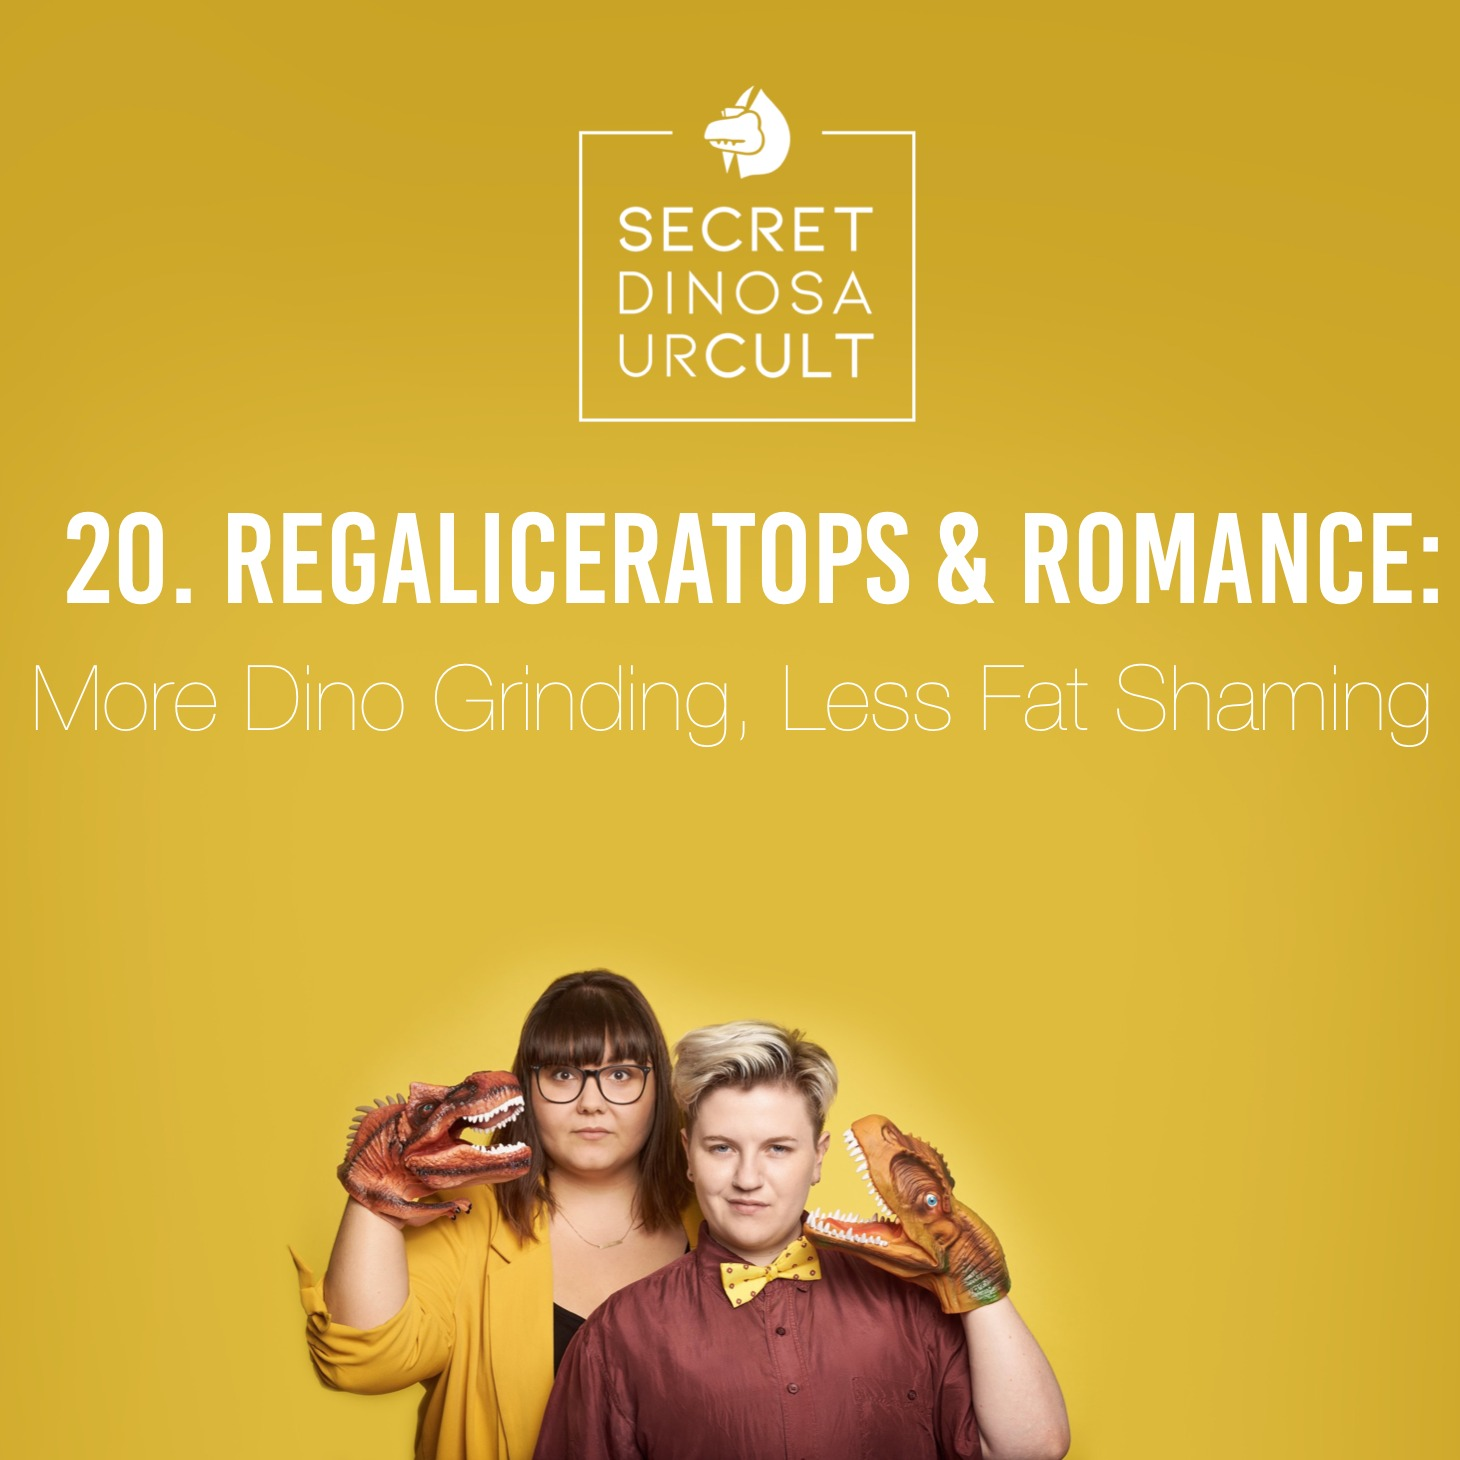 20: Regaliceratops & Romance: More Dino Grinding, Less Fat Shaming